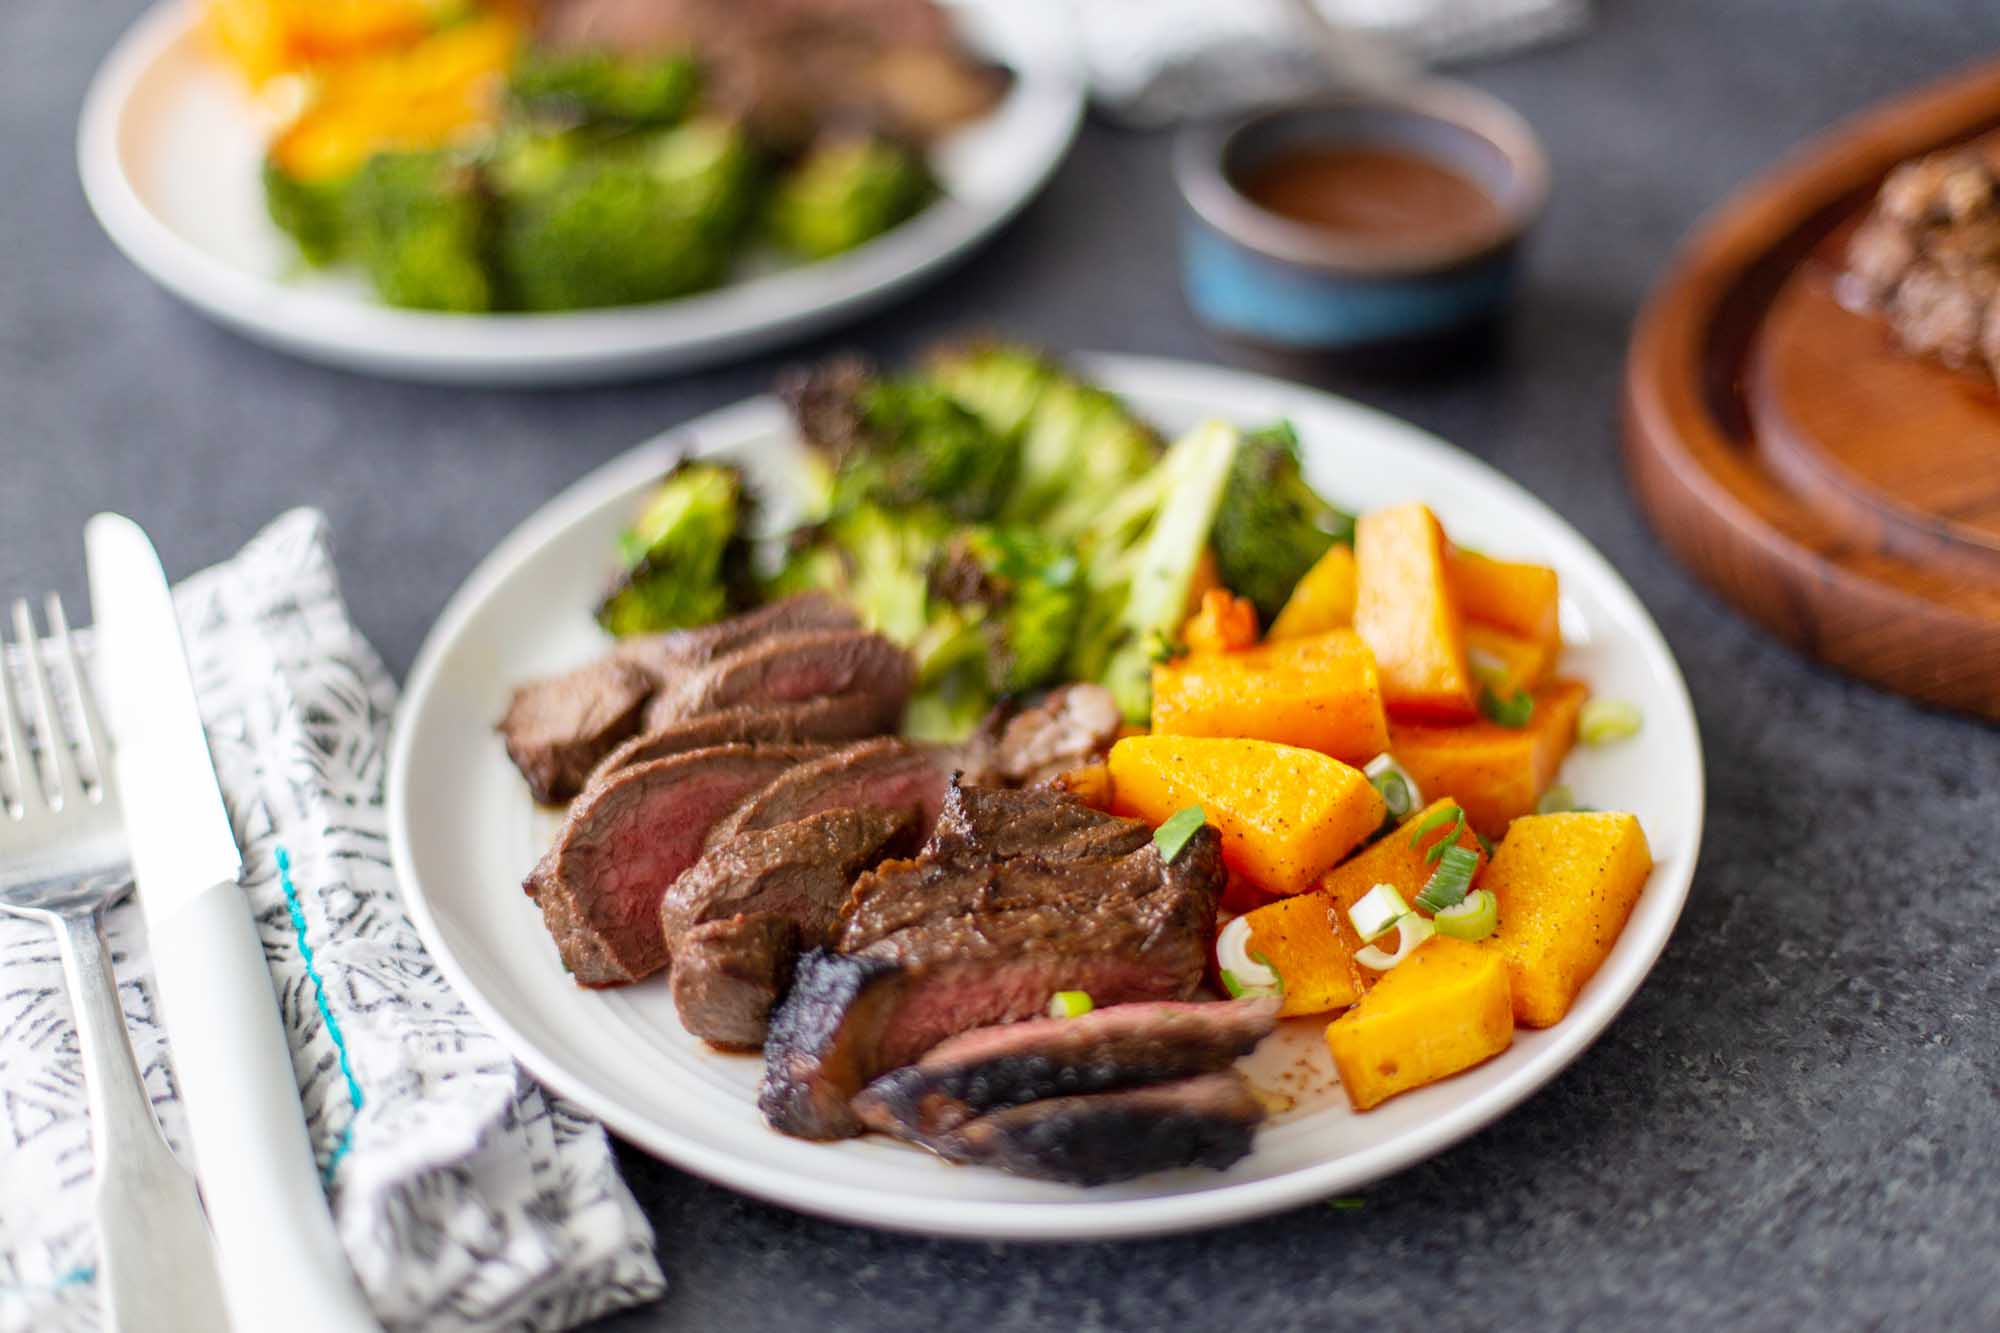 Side view of two plates with sliced easy broiled steak, chopped broccoli and squash. Silverware and a linen are next to each plate.